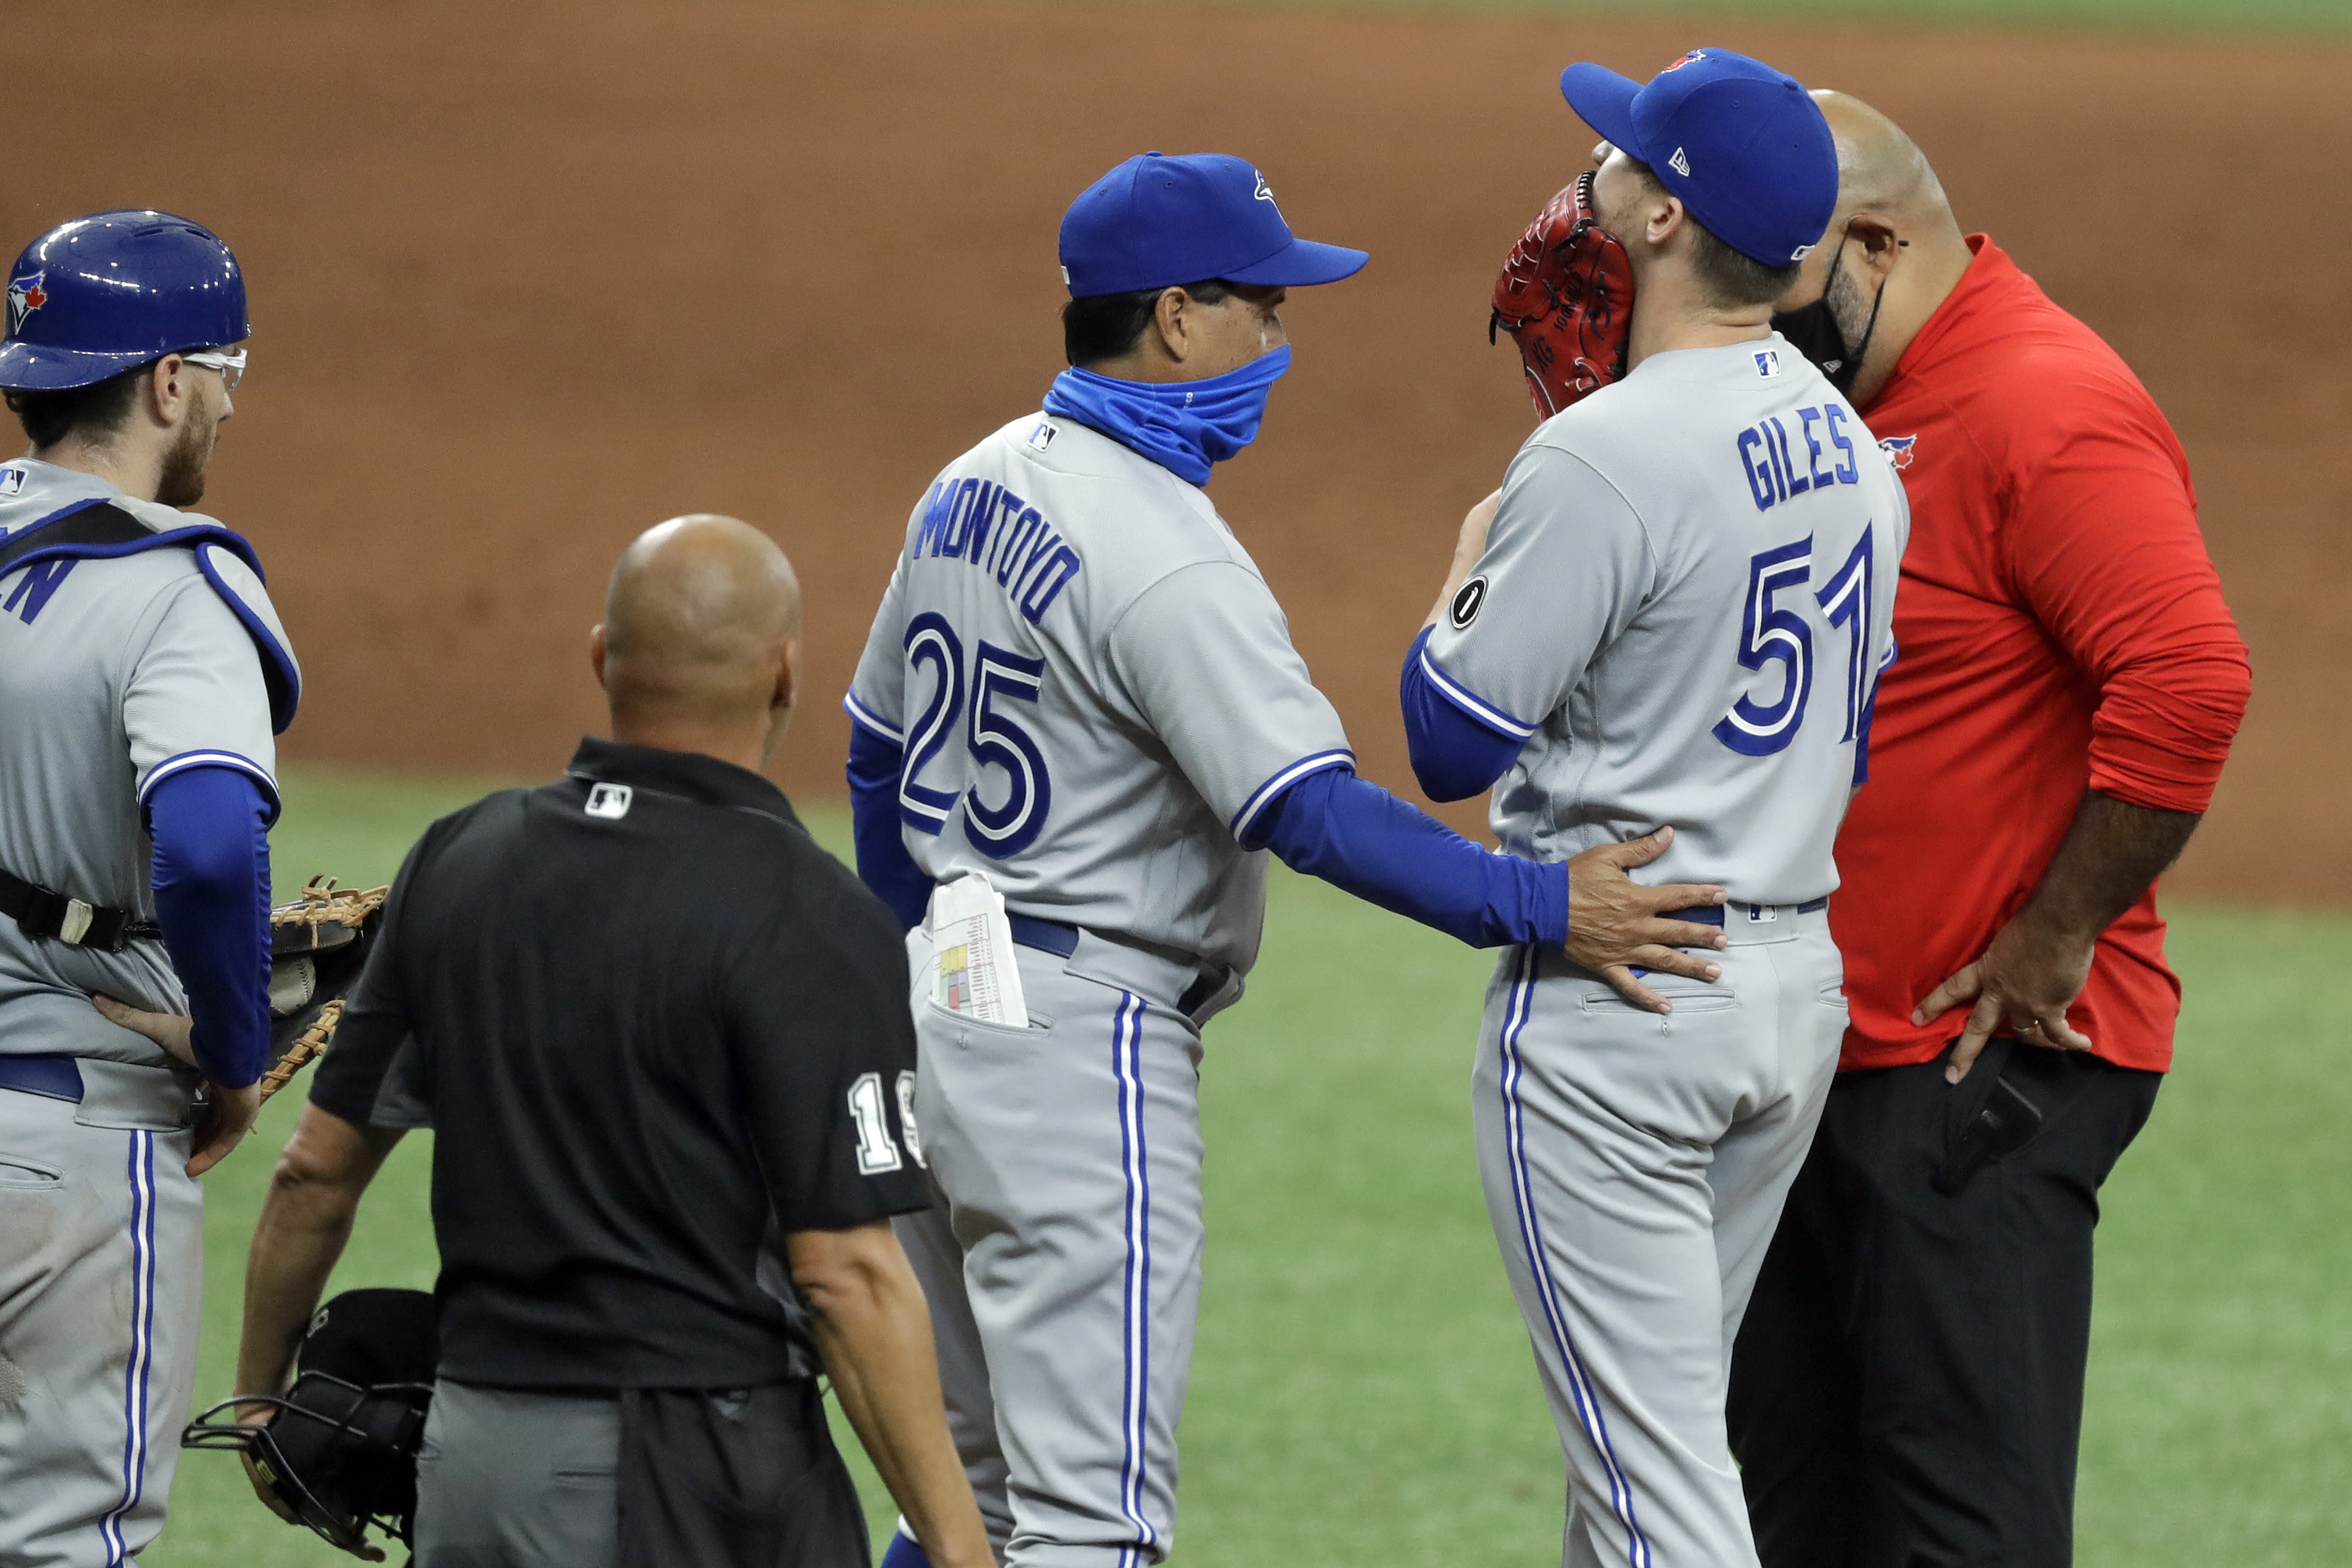 Toronto Blue Jays manager Charlie Montoya (25) checks on relief pitcher Ken Giles (51) after Giles hurt himself during the ninth inning of a baseball game against the Tampa Bay Rays Sunday, July 26, 2020, in St. Petersburg, Fla. Giles left the game. (AP Photo/Chris O'Meara)